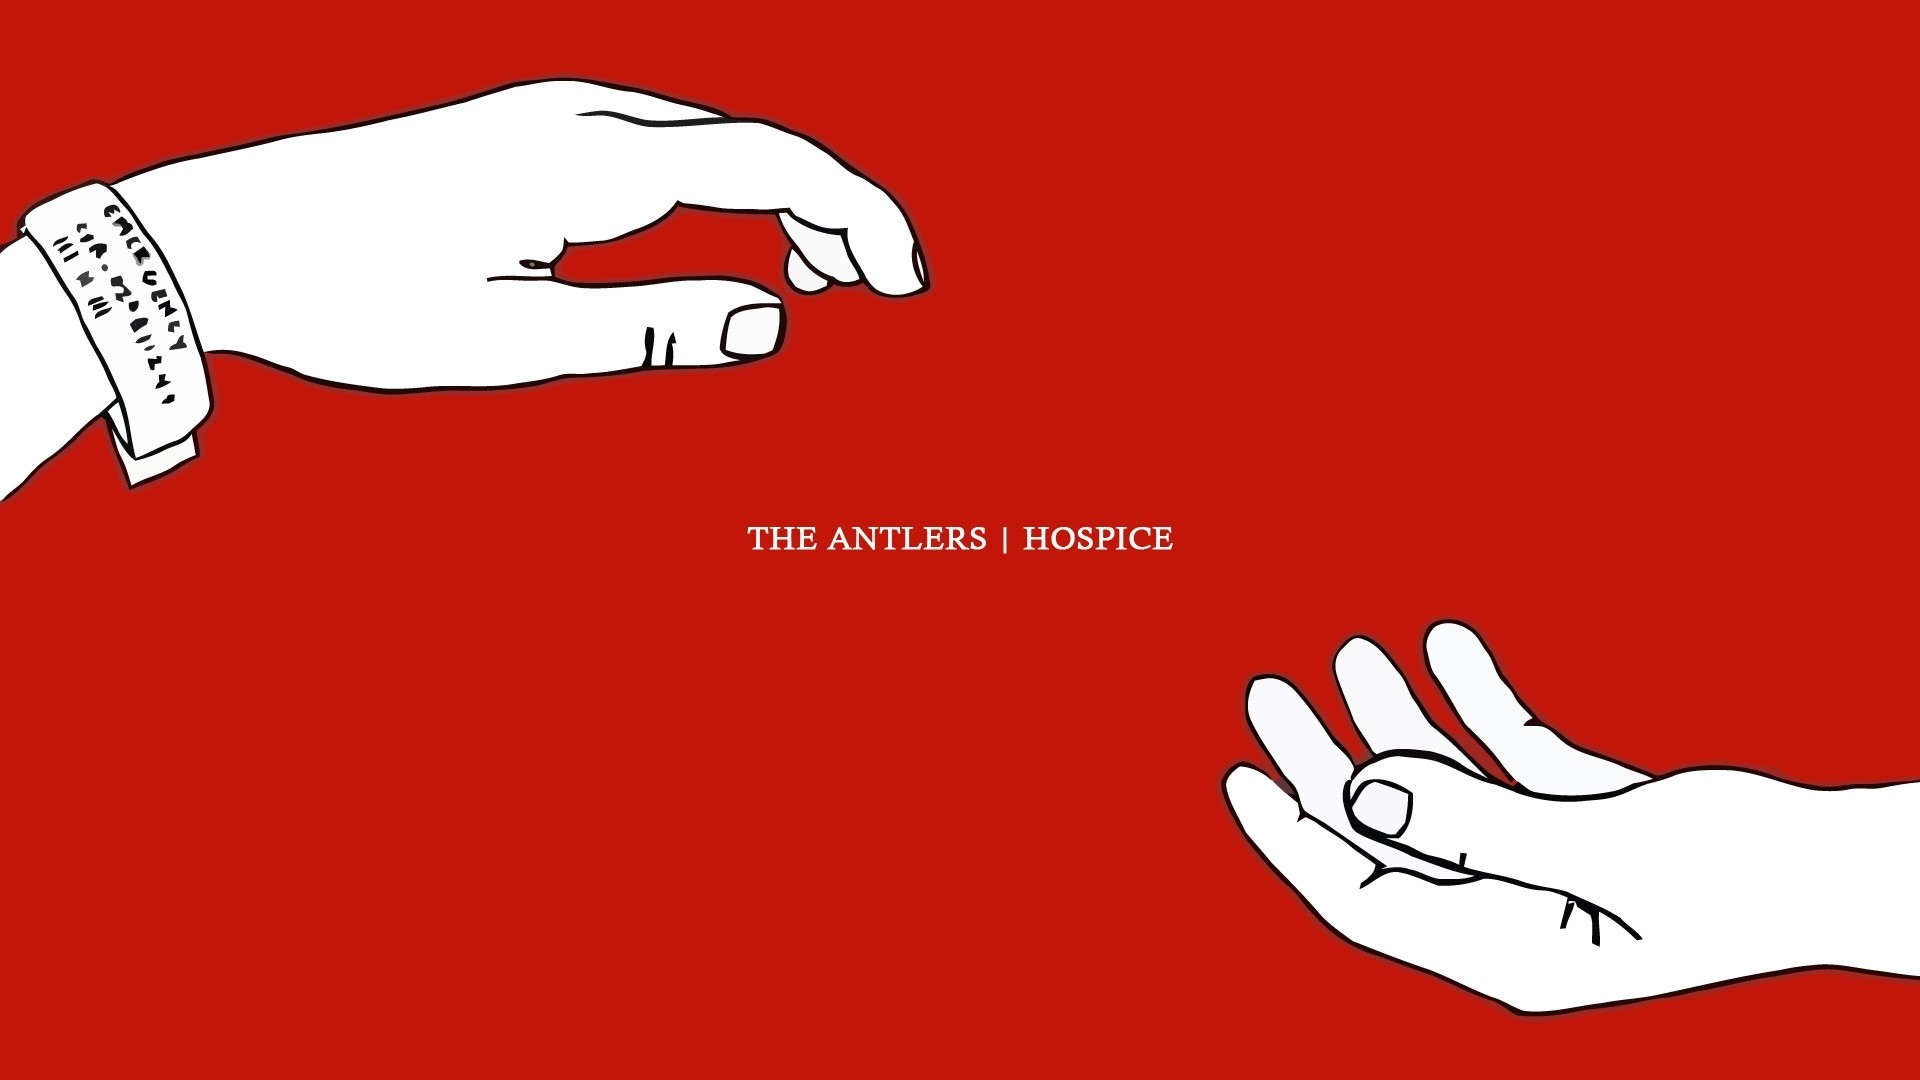 Res: 1920x1080, rock the antlers indie simple background hospice  wallpaper Art HD  Wallpaper